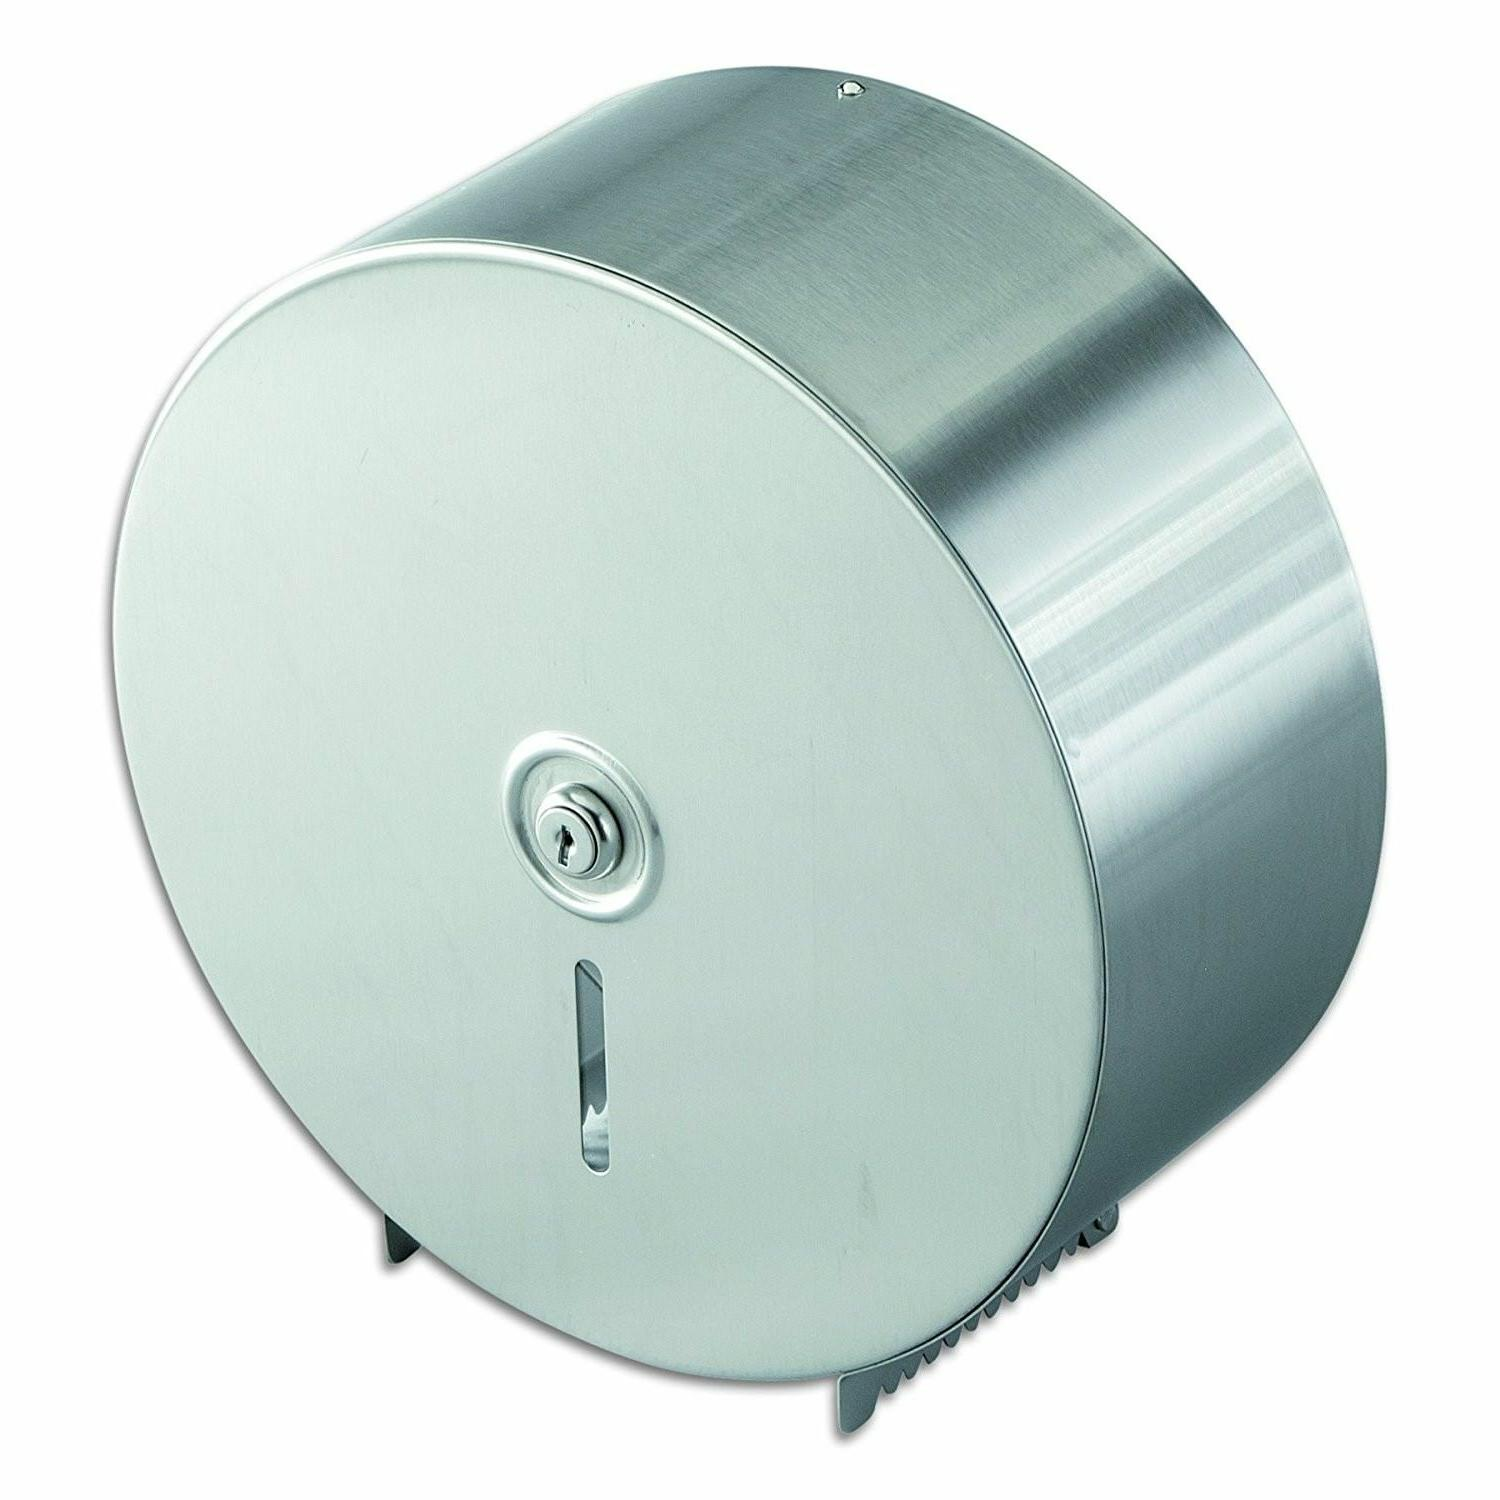 2890 jumbo toilet tissue dispenser stainless steel